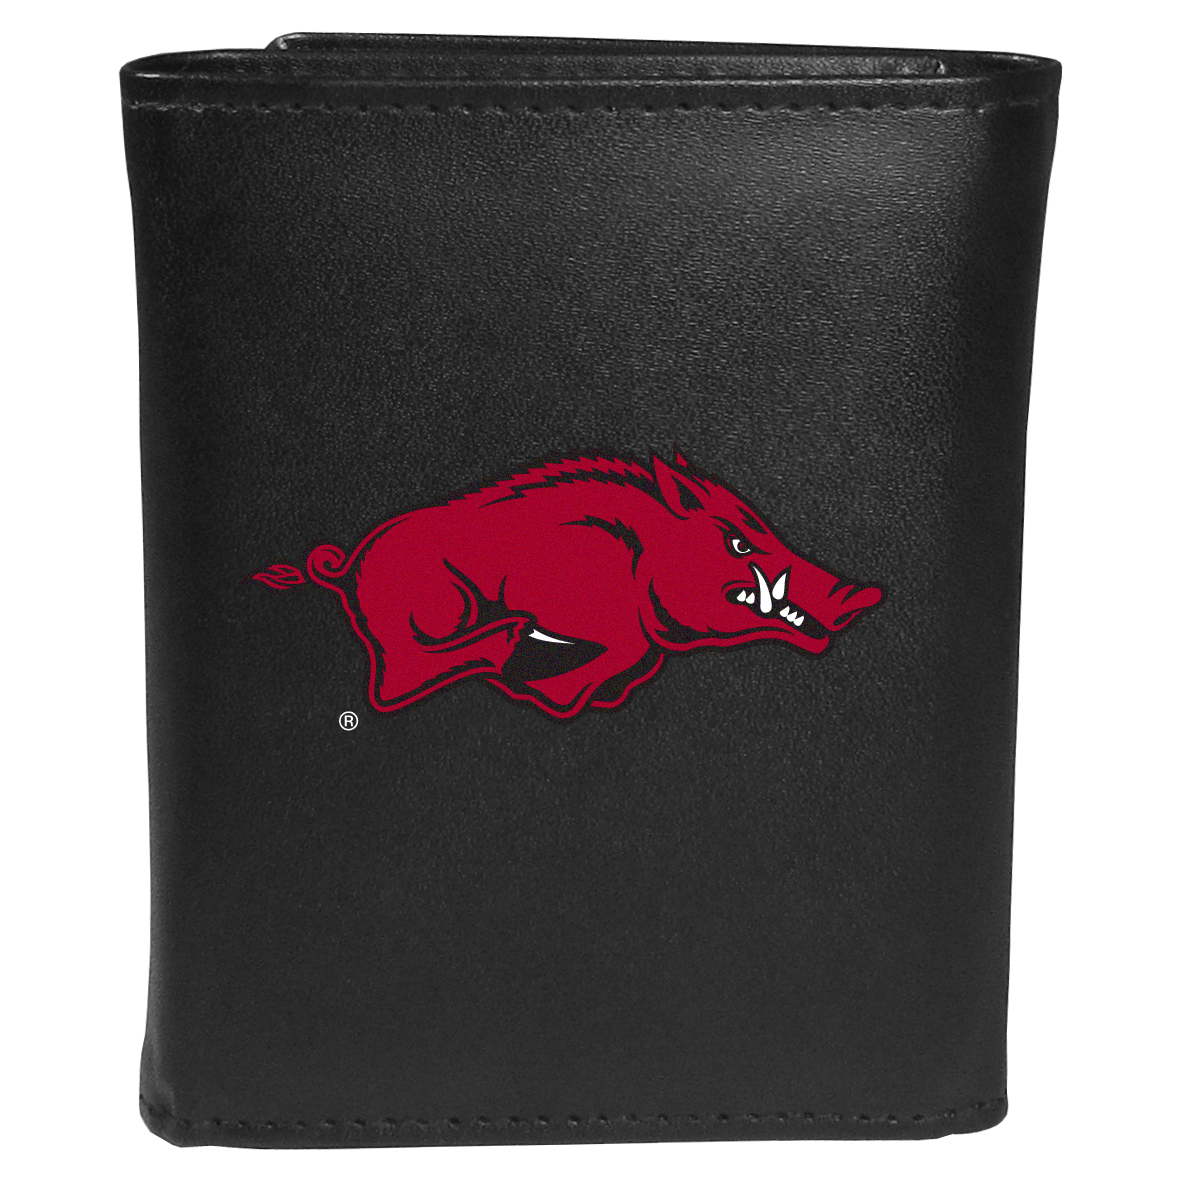 Arkansas Razorbacks Tri-fold Wallet Large Logo - Sports fans do not have to sacrifice style with this classic tri-fold wallet that sports theArkansas Razorbacks?extra large logo. This men's fashion accessory has a leather grain look and expert craftmanship for a quality wallet at a great price. The wallet features inner credit card slots, windowed ID slot and a large billfold pocket. The front of the wallet features an extra large printed team logo.